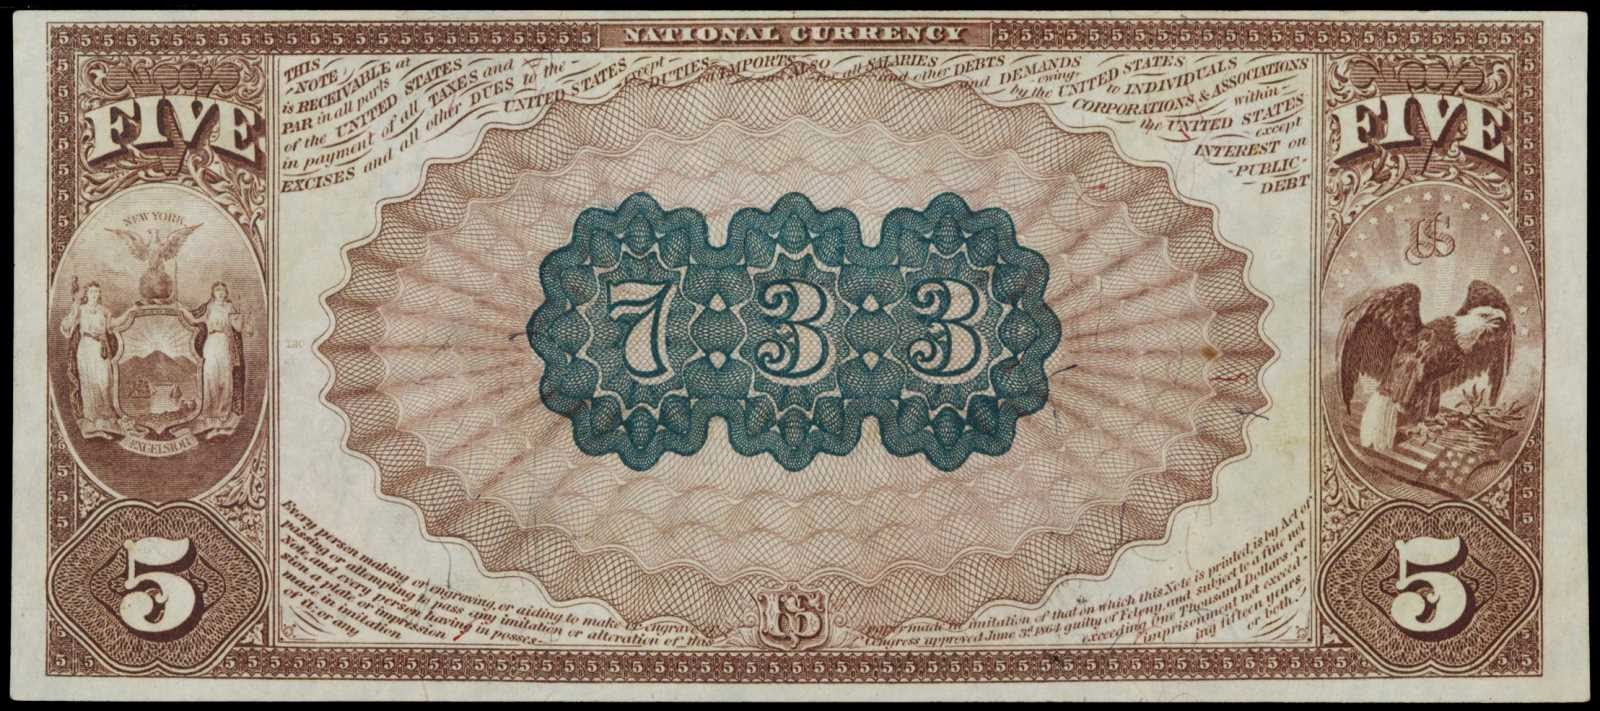 1882 Five Dollar bill National Currency Brown Back